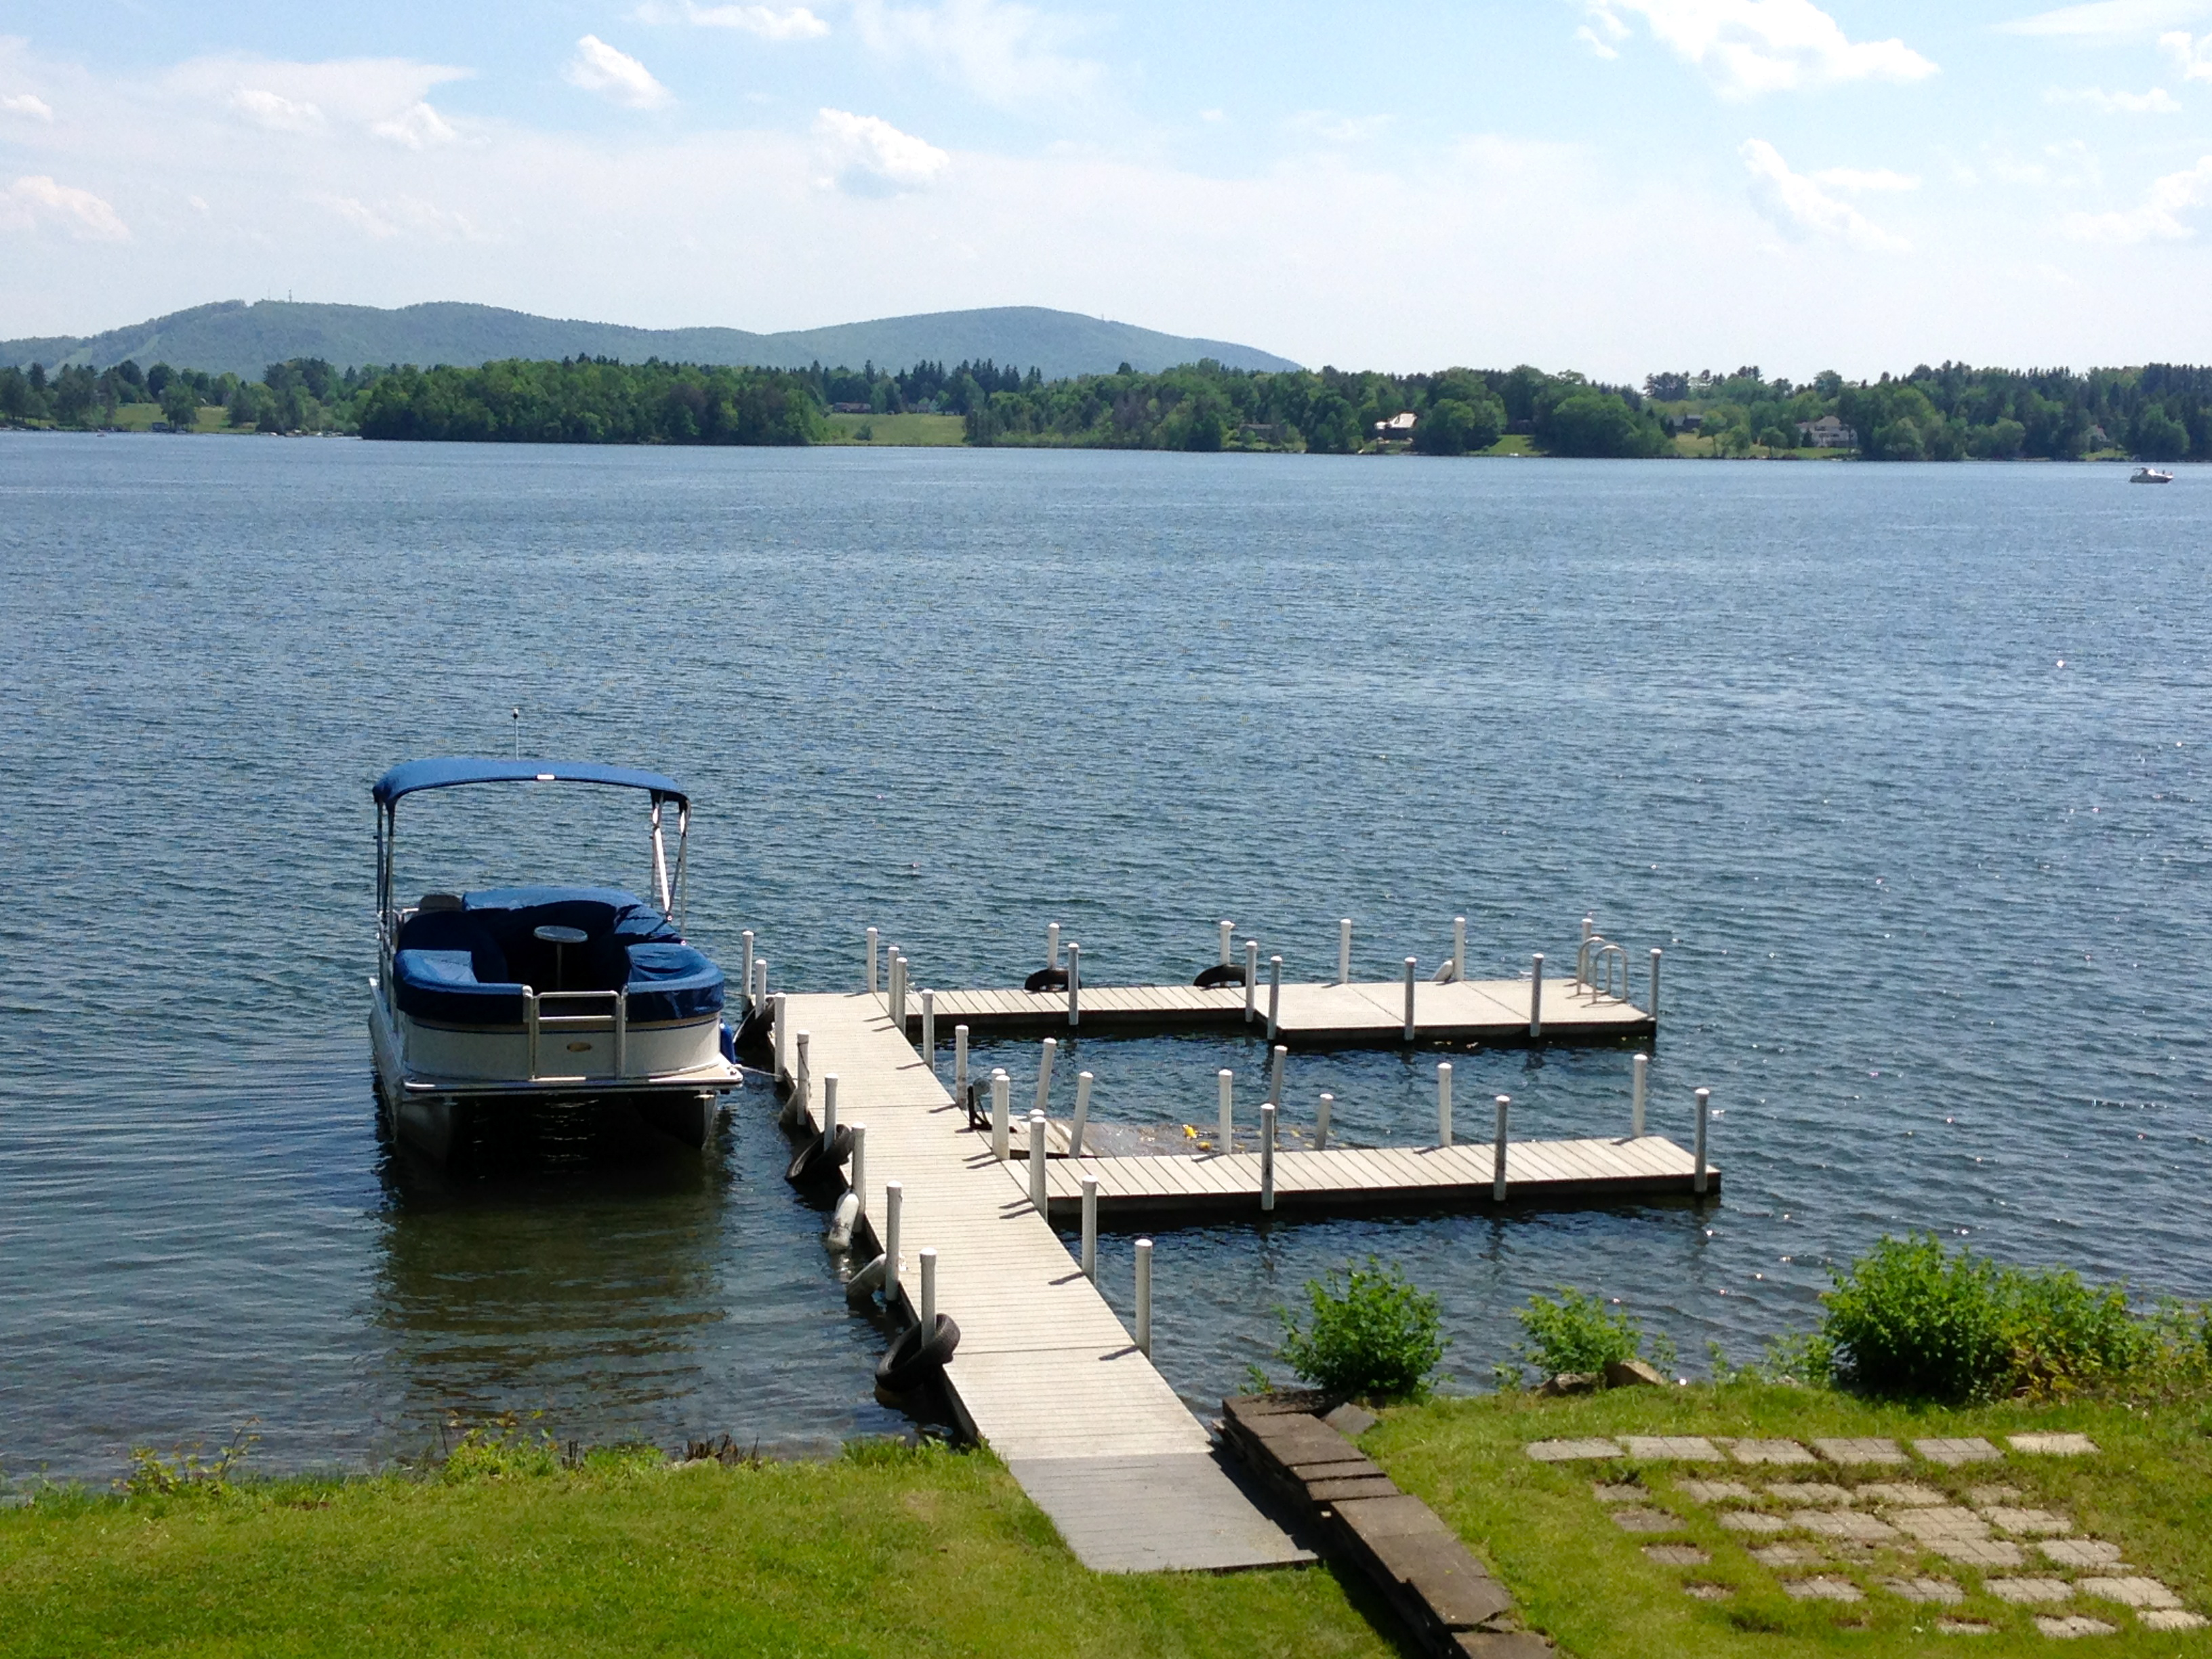 Single Family Home for Sale at Waterfront on Appletree Point 18 Appletree Point Pittsfield, Massachusetts 01201 United States